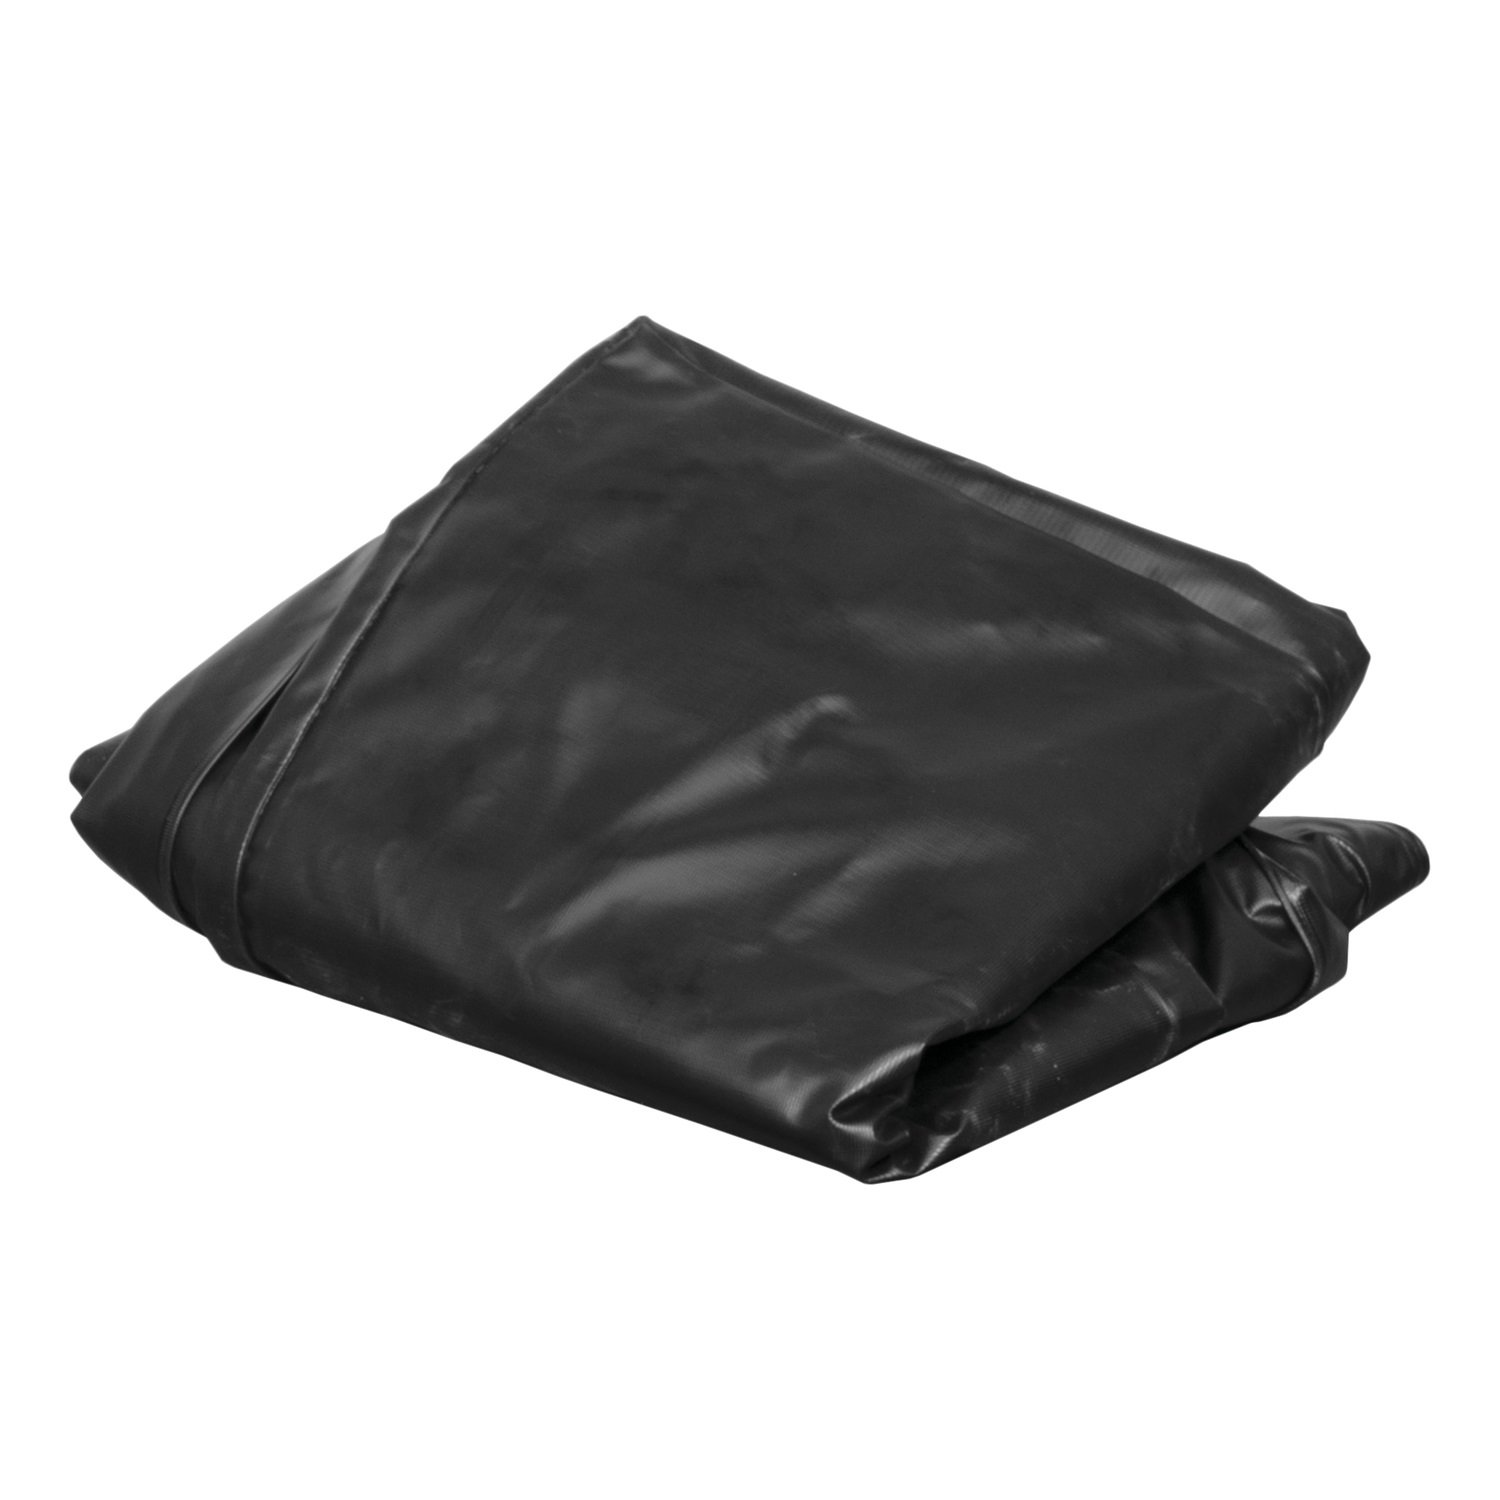 CURT 18221 Extended Roof Rack Cargo Bag by Curt Manufacturing (Image #7)